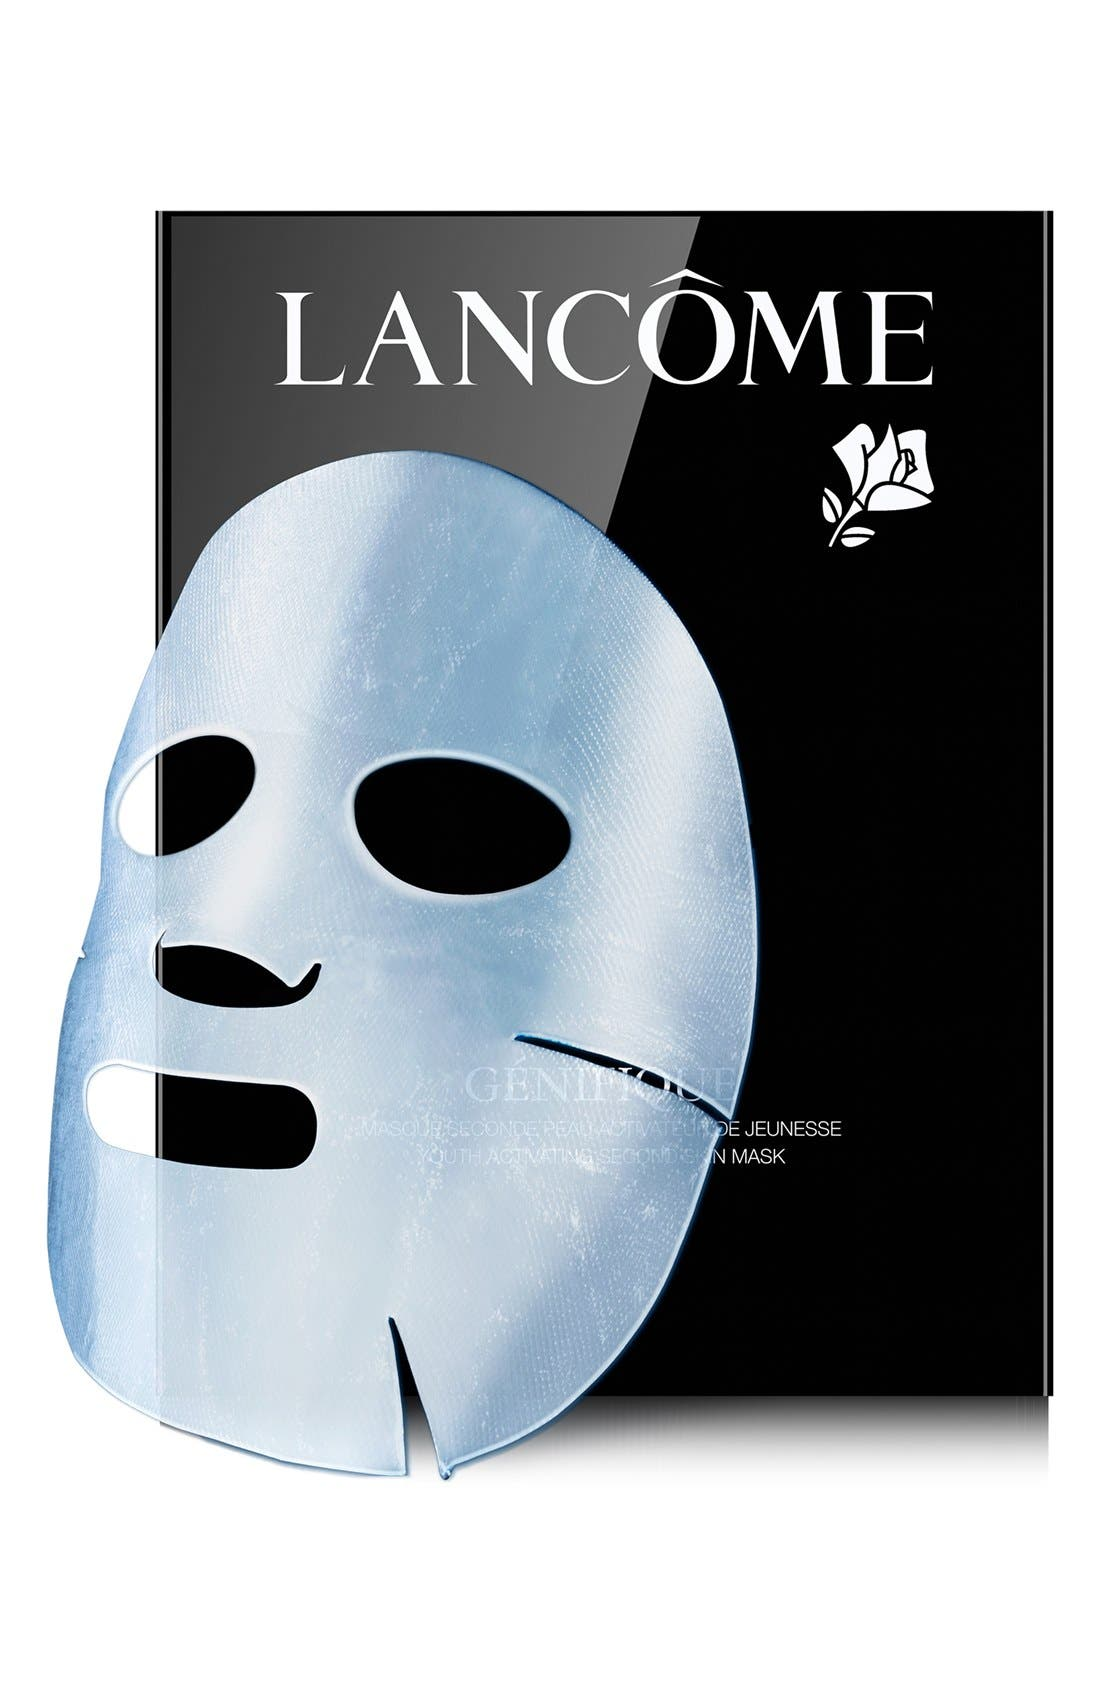 Lancôme 'Génifique' Youth Activating Second Skin Mask